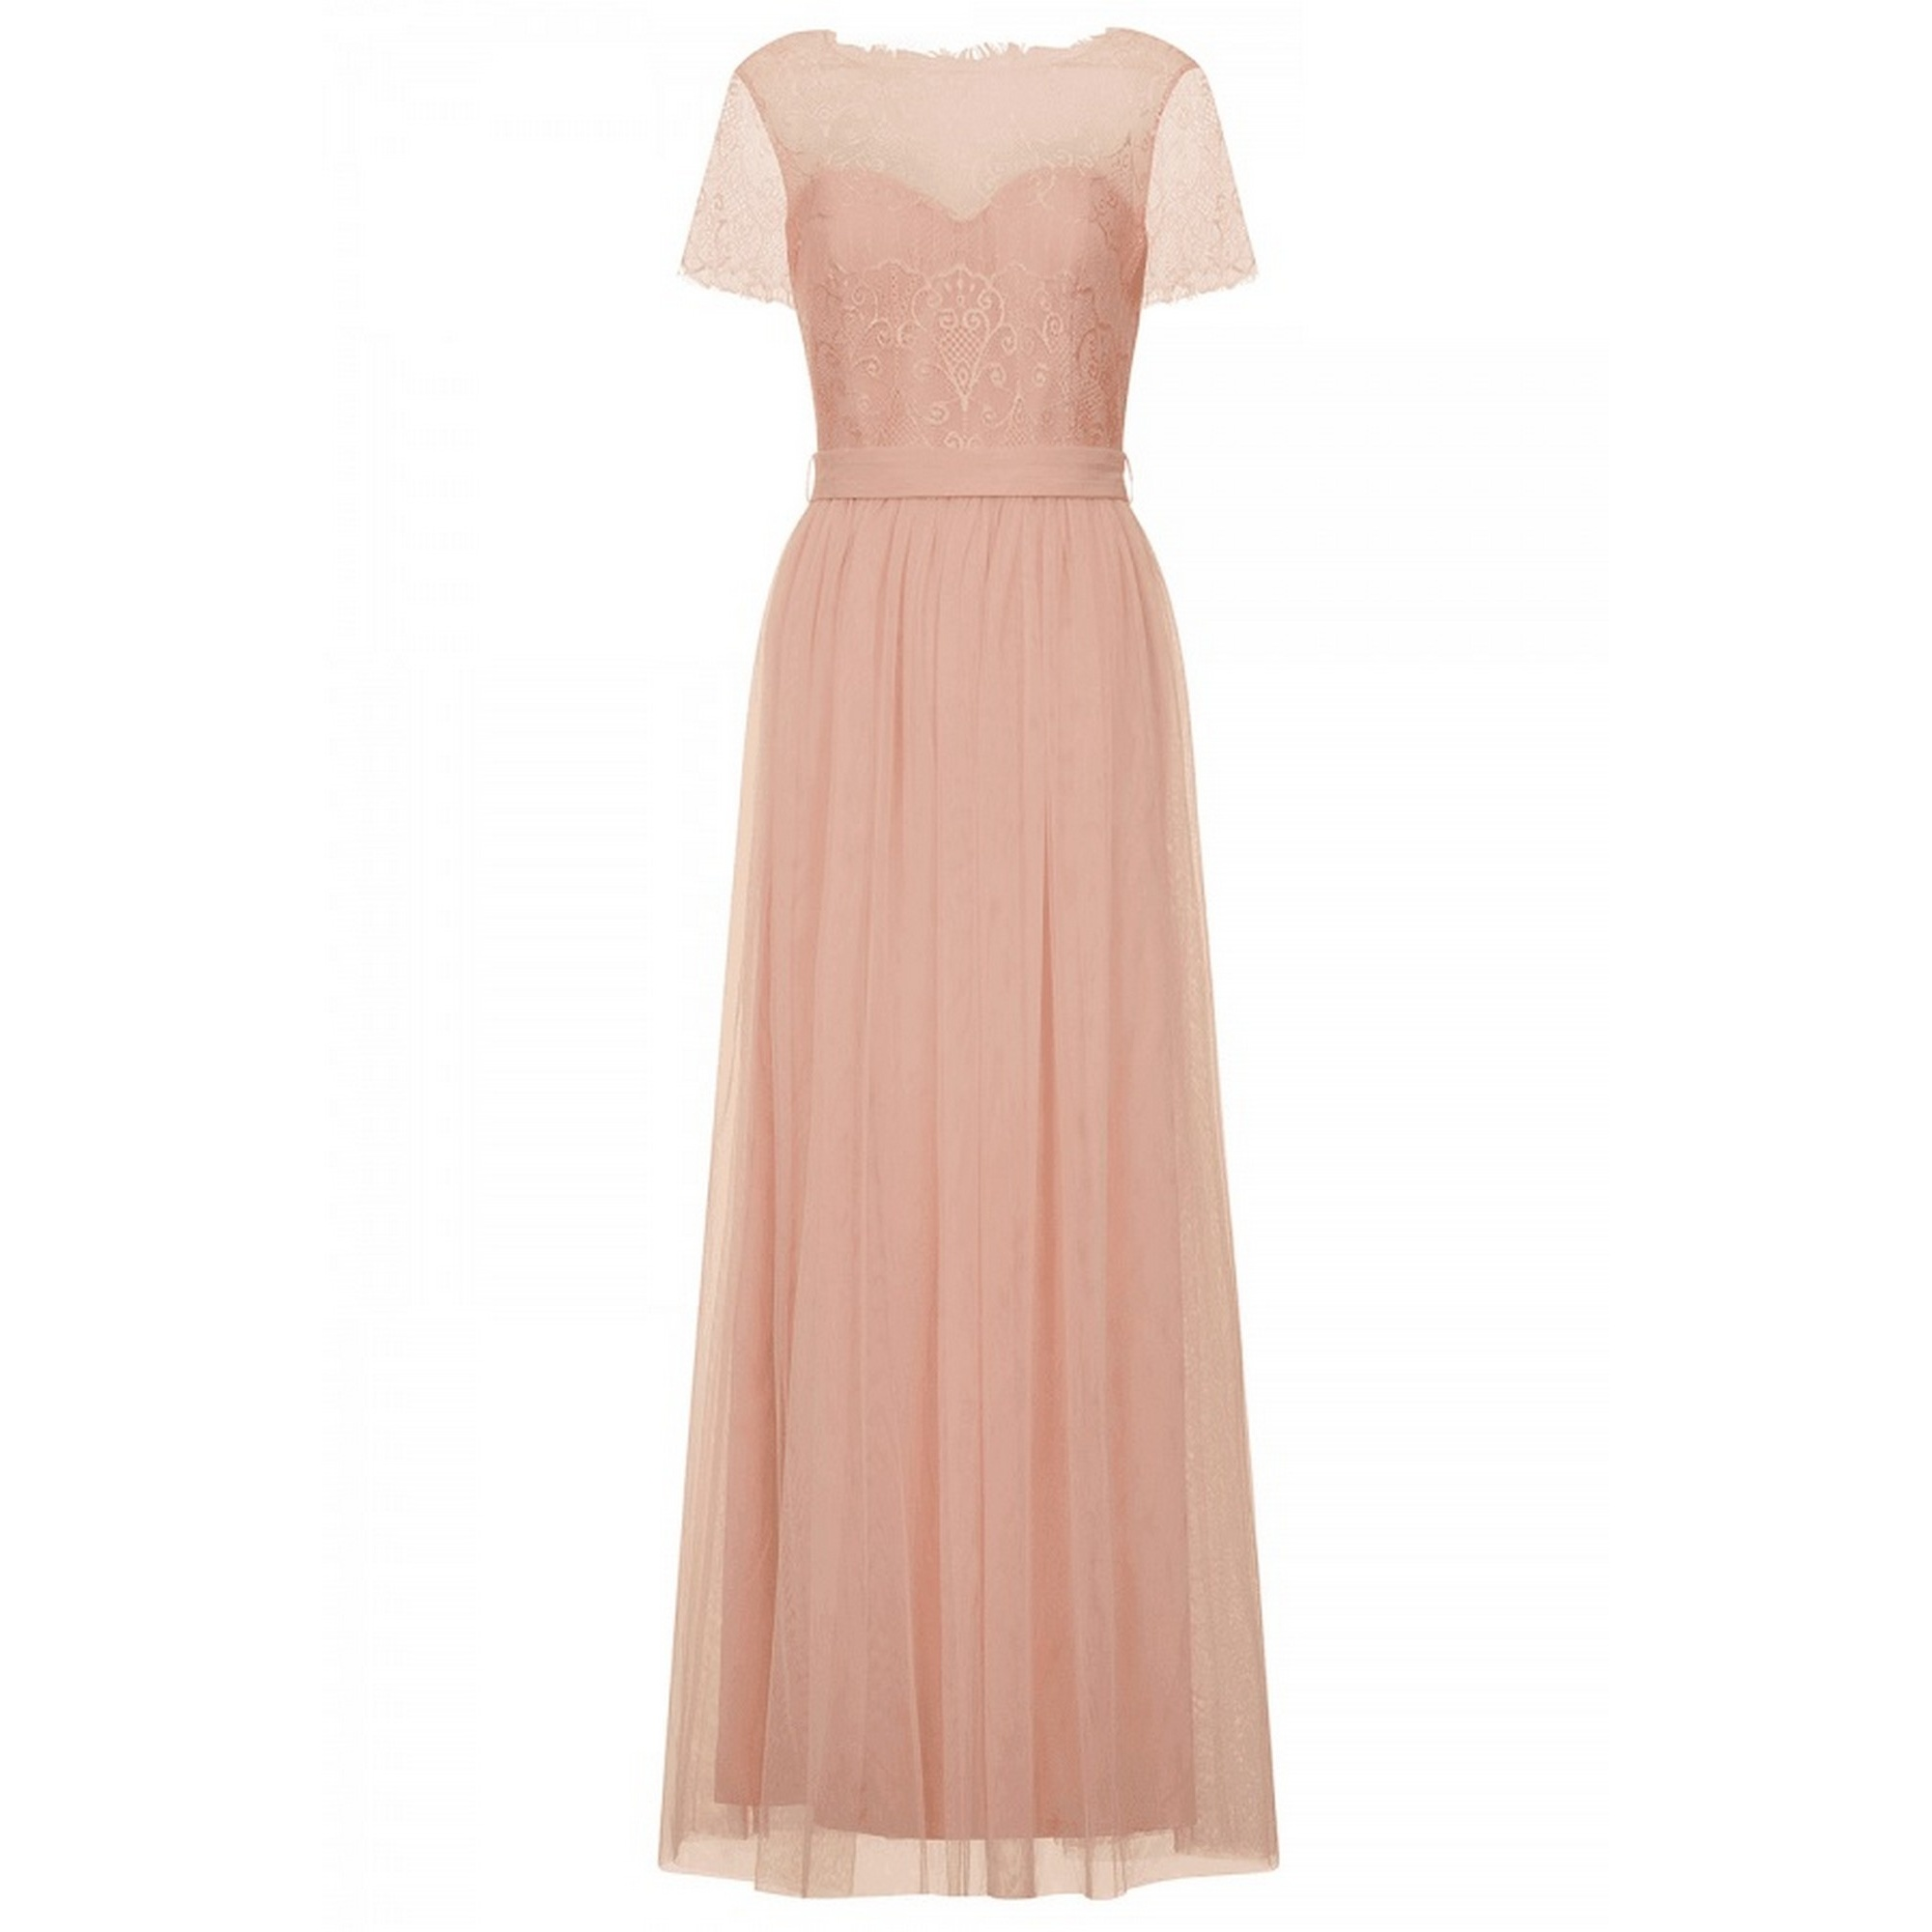 Little Mistress Womens/Ladies Lace Overlay Maxi Dress (10) (Dusty Pink)